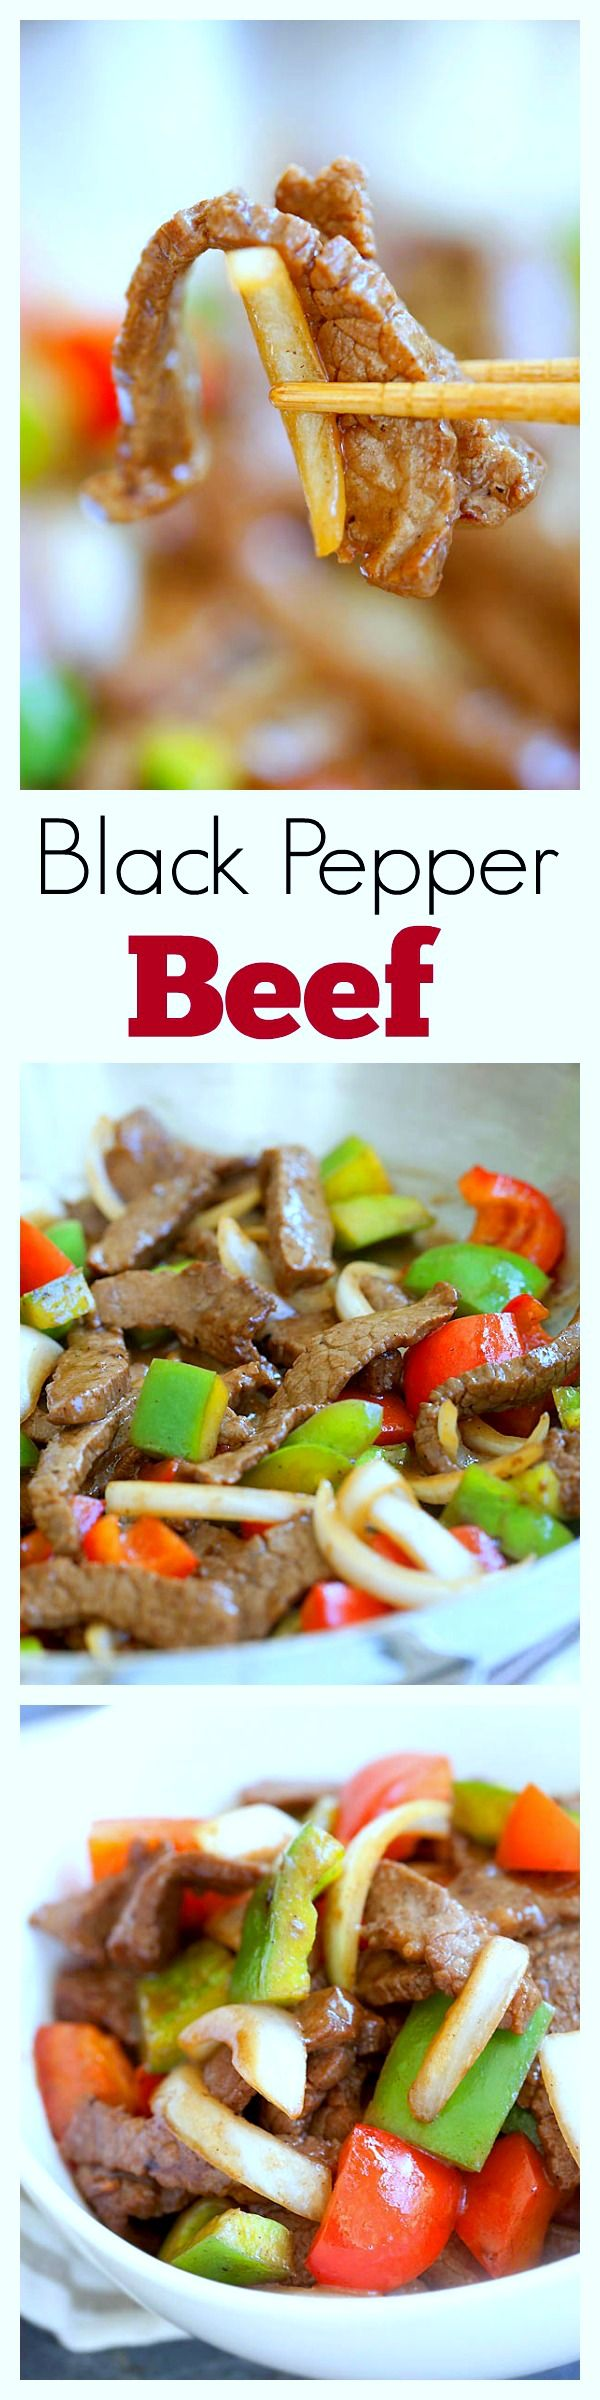 Easy black pepper beef recipe - delicious Chinese black pepper steak that takes 20 mins and much better than takeout | rasamalaysia.com